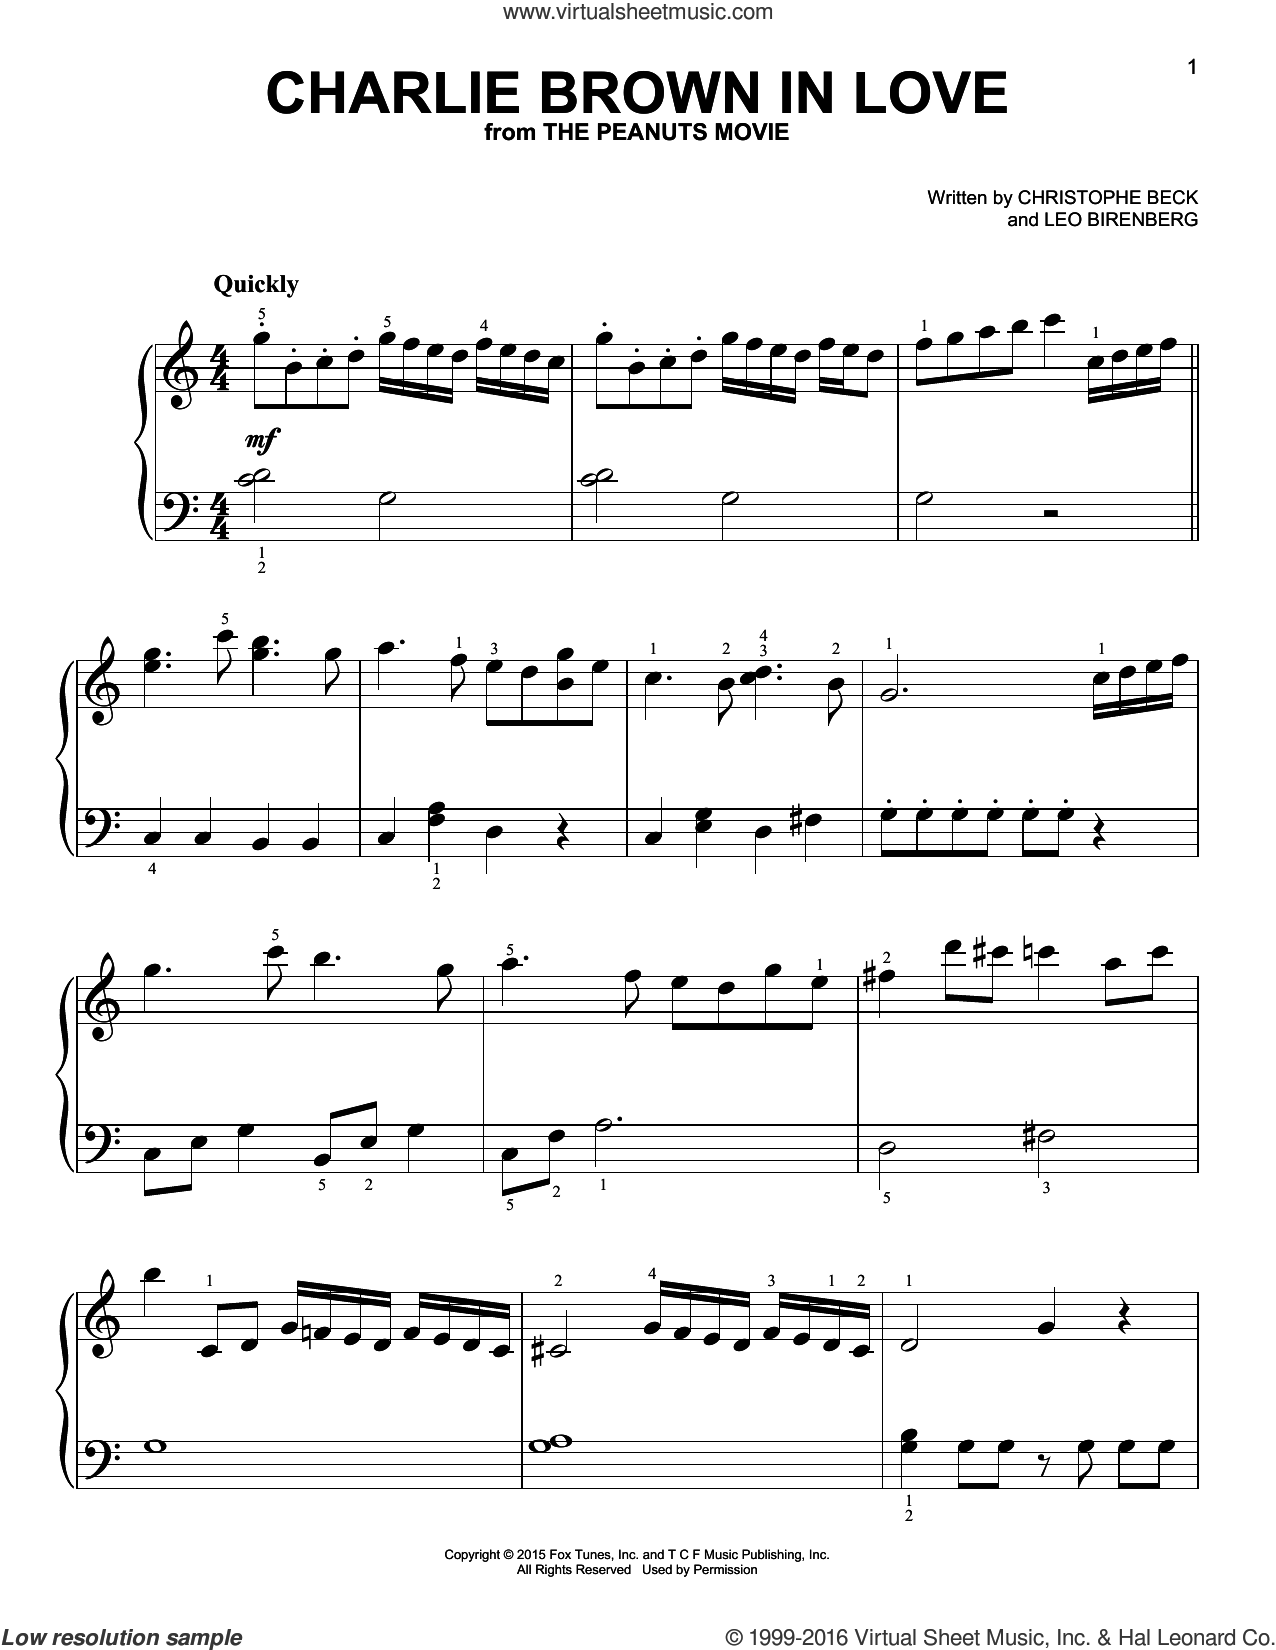 Charlie Brown In Love sheet music for piano solo by Christophe Beck and Leo Birenberg, easy skill level